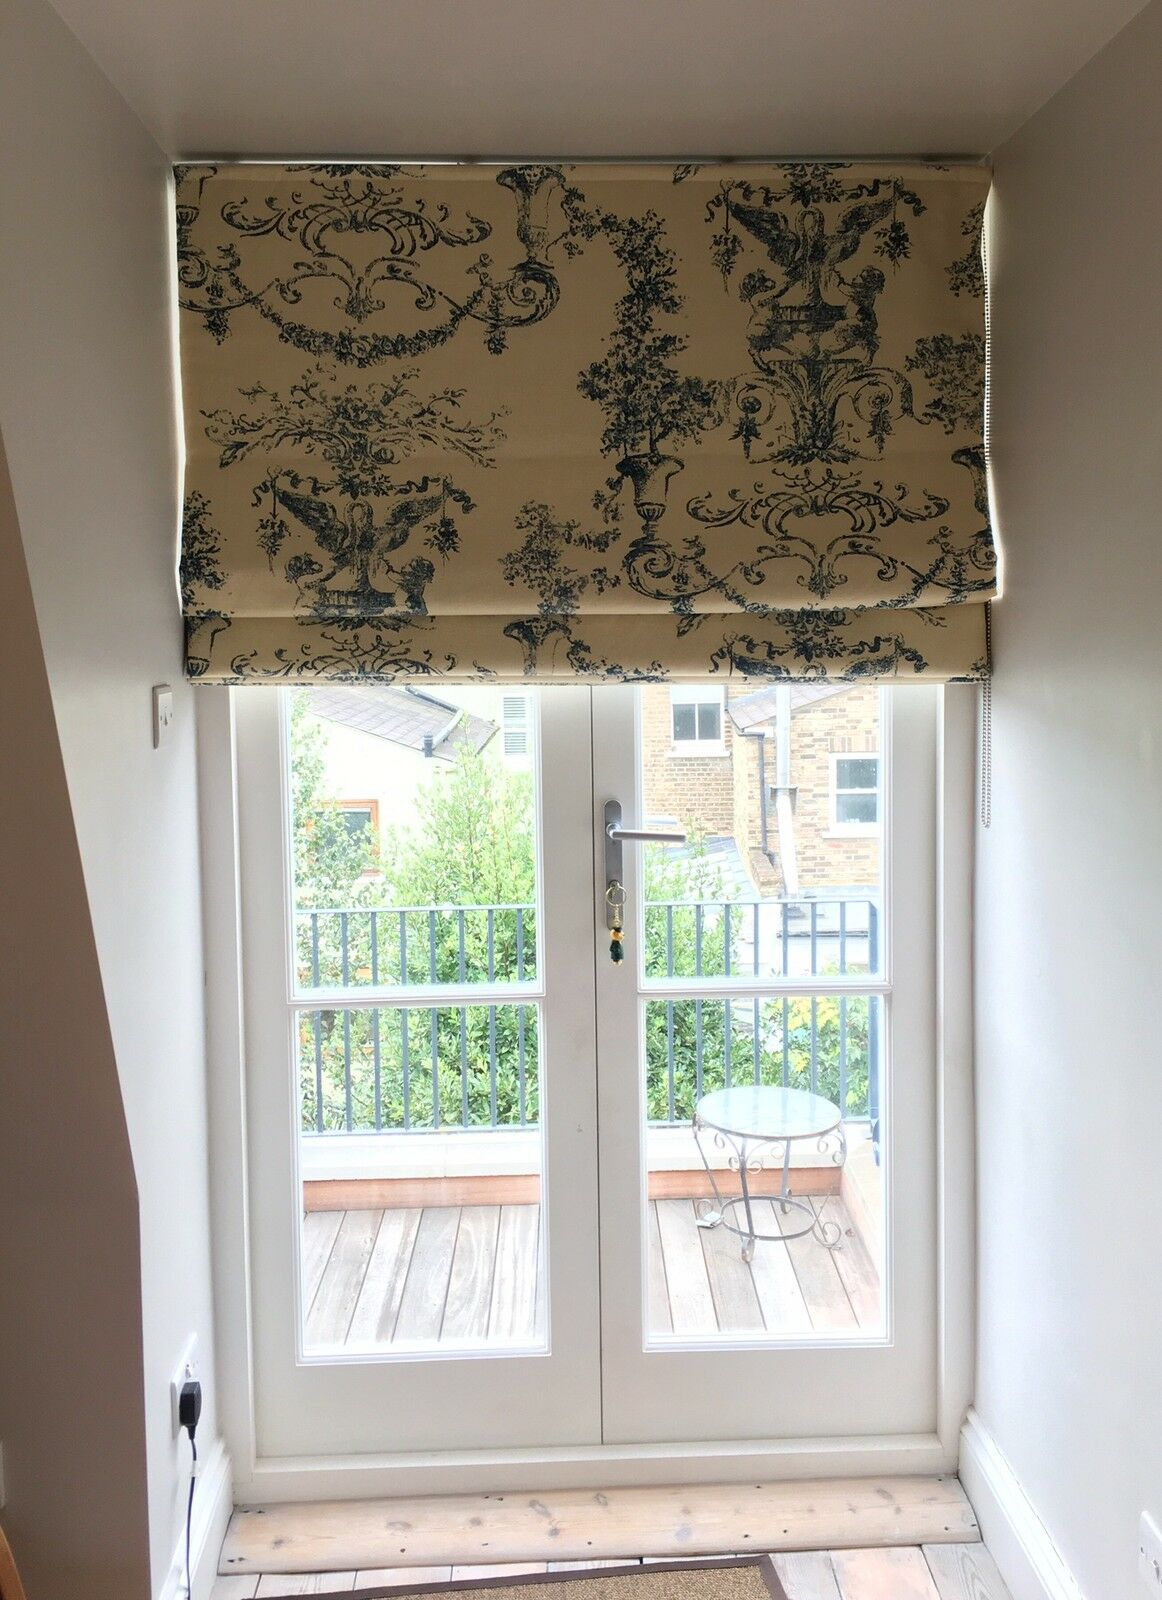 *Handmade Made to Measure Roman Blinds*.  - Free Free Free Quote - Supply your own fabric b865b4